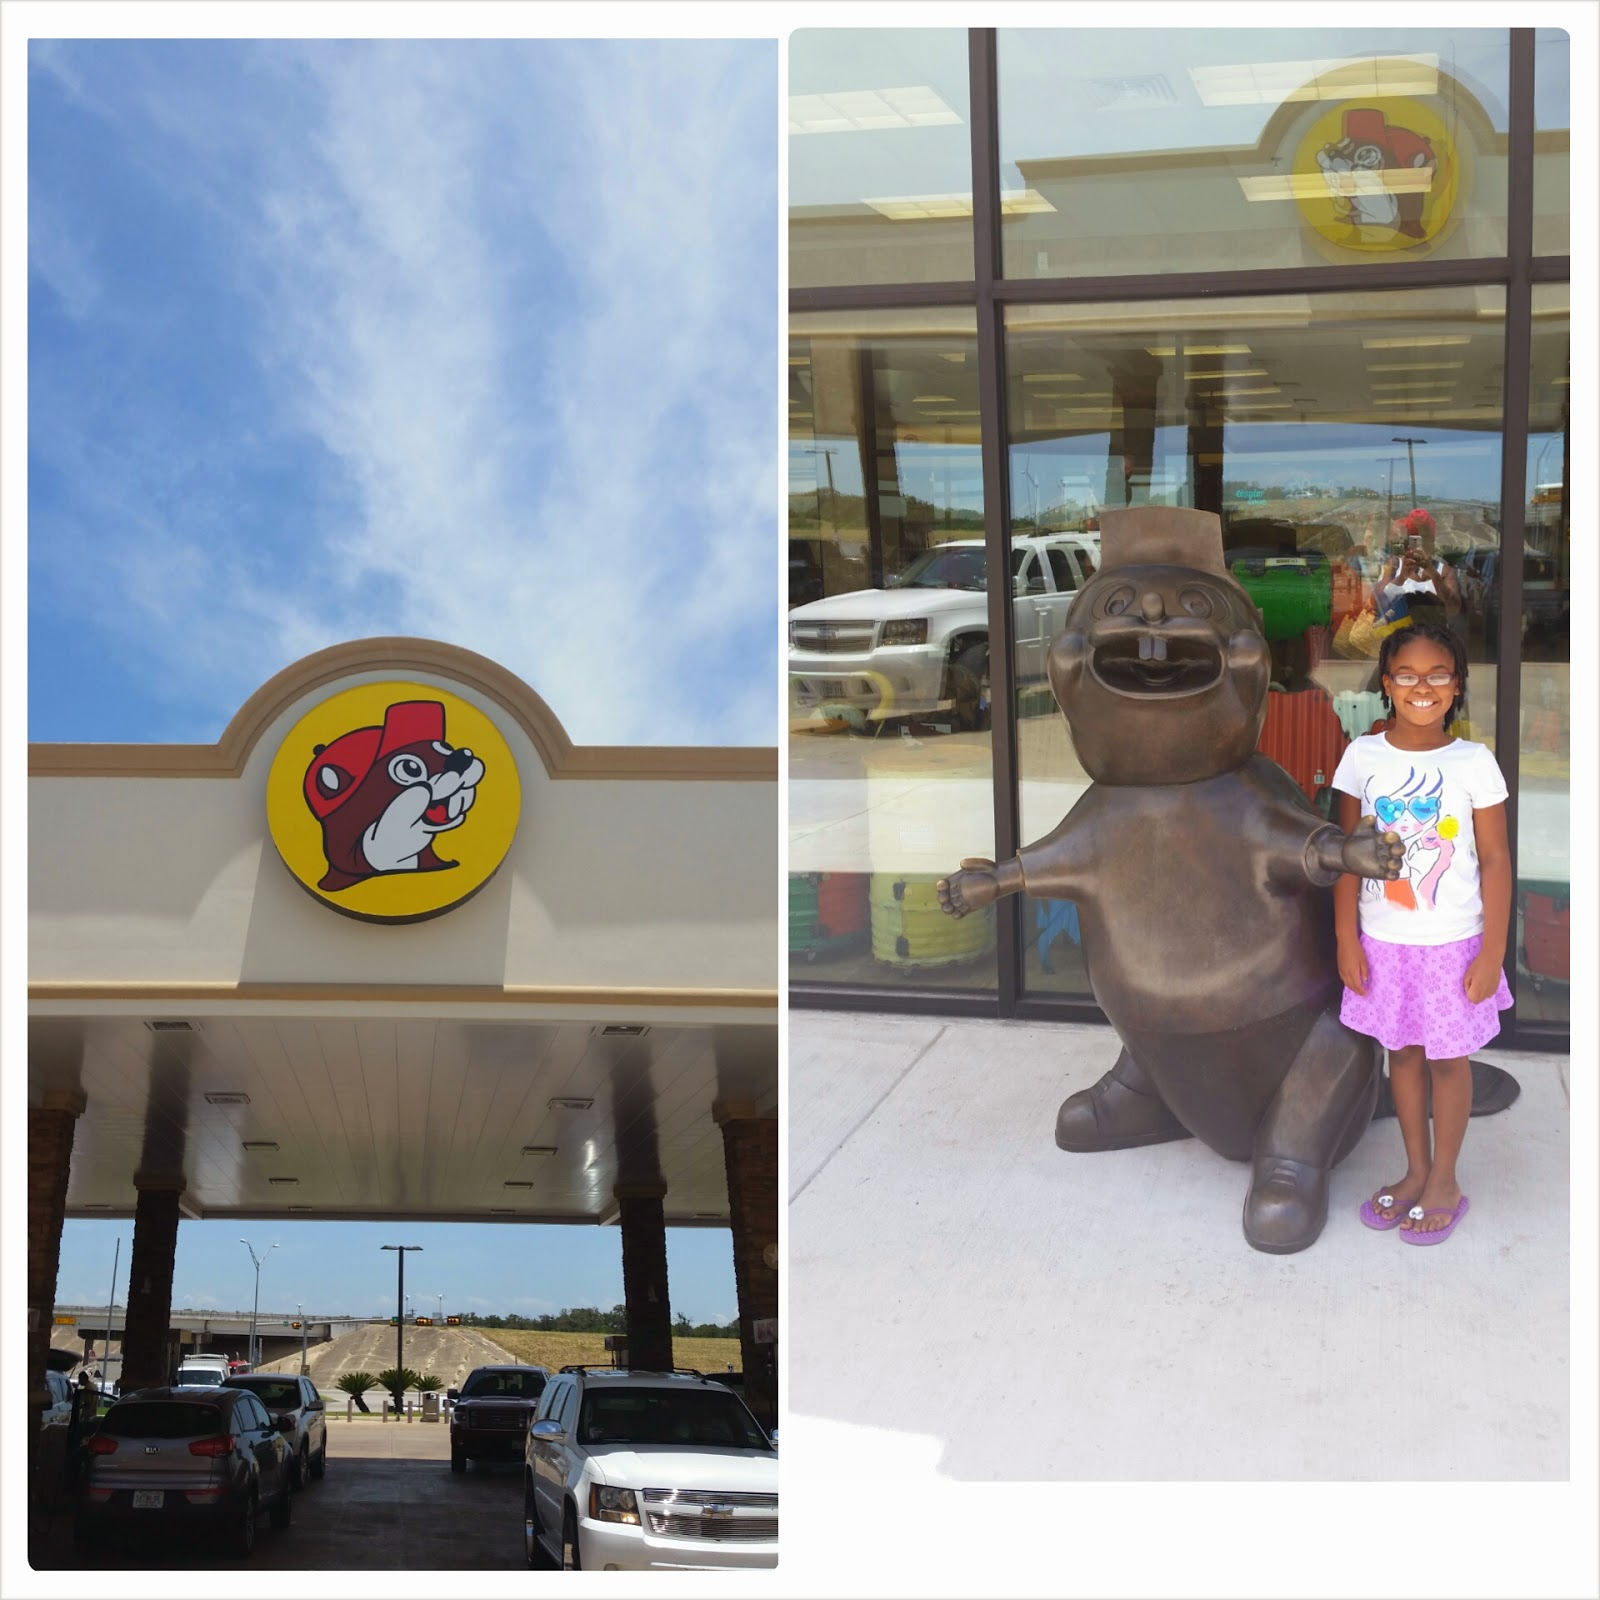 My Epic Family Road Trip Vacation! #RoadTrip #bucees via ProductReviewMom.com